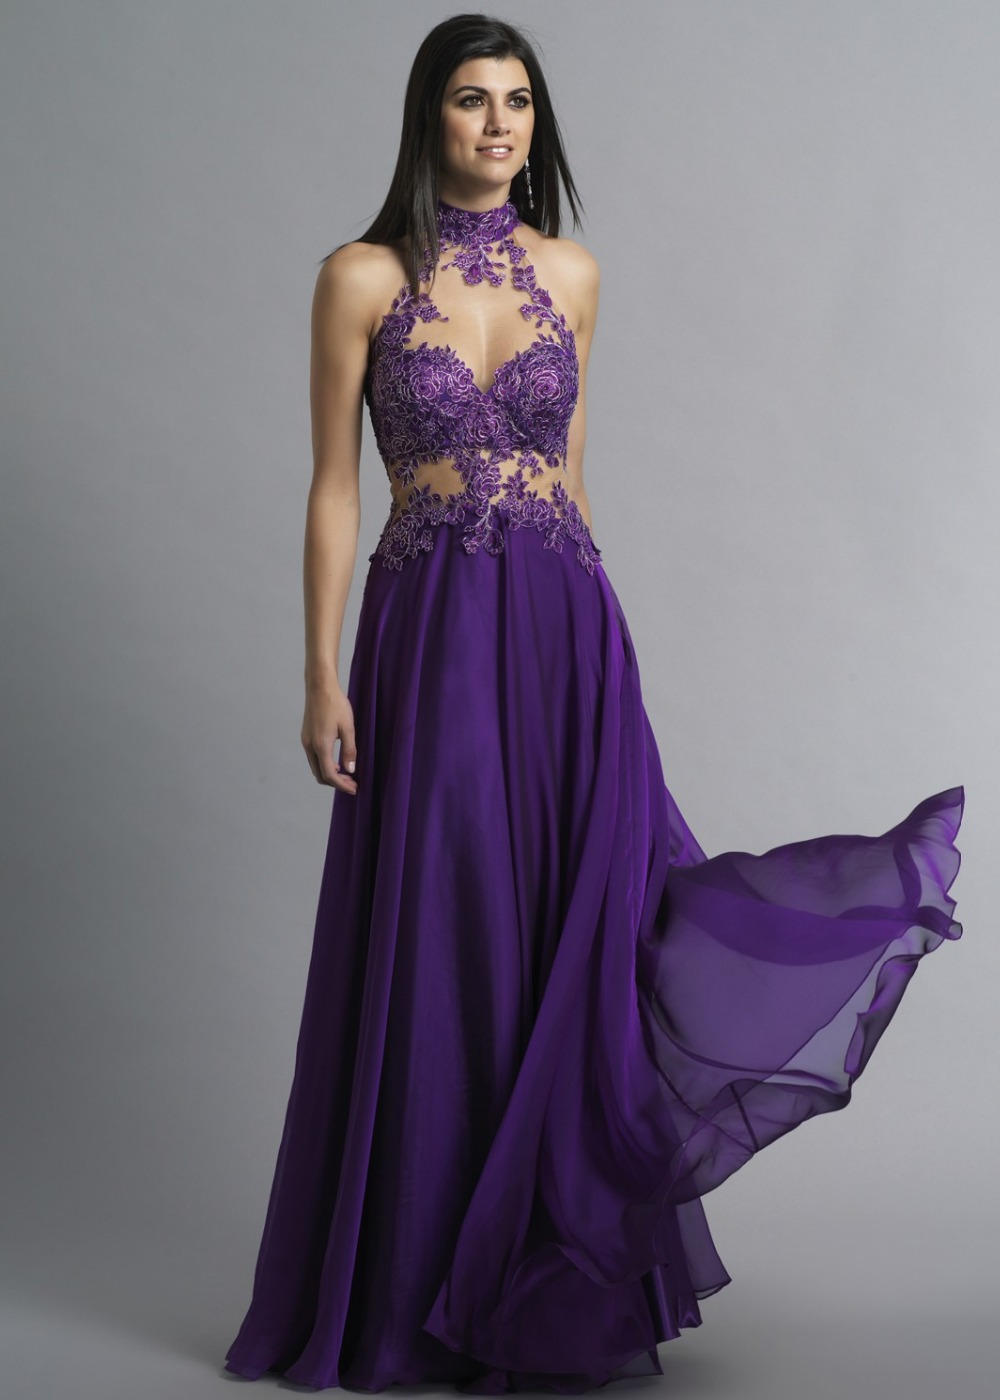 purple prom dresses with sleeves | Gommap Blog